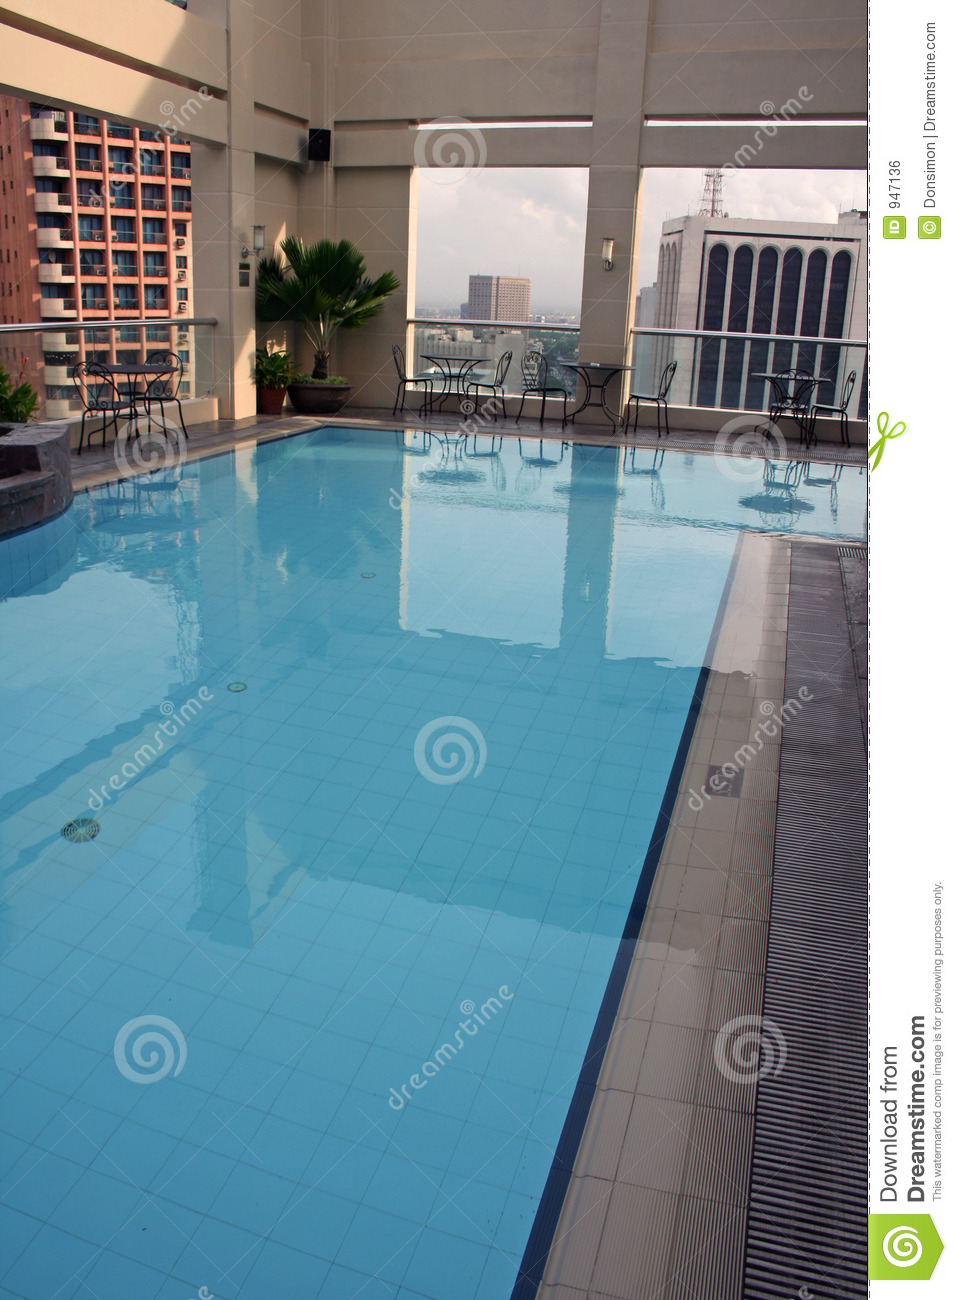 Swimming Pool Above Manila Philippines Royalty Free Stock Image Image 947136